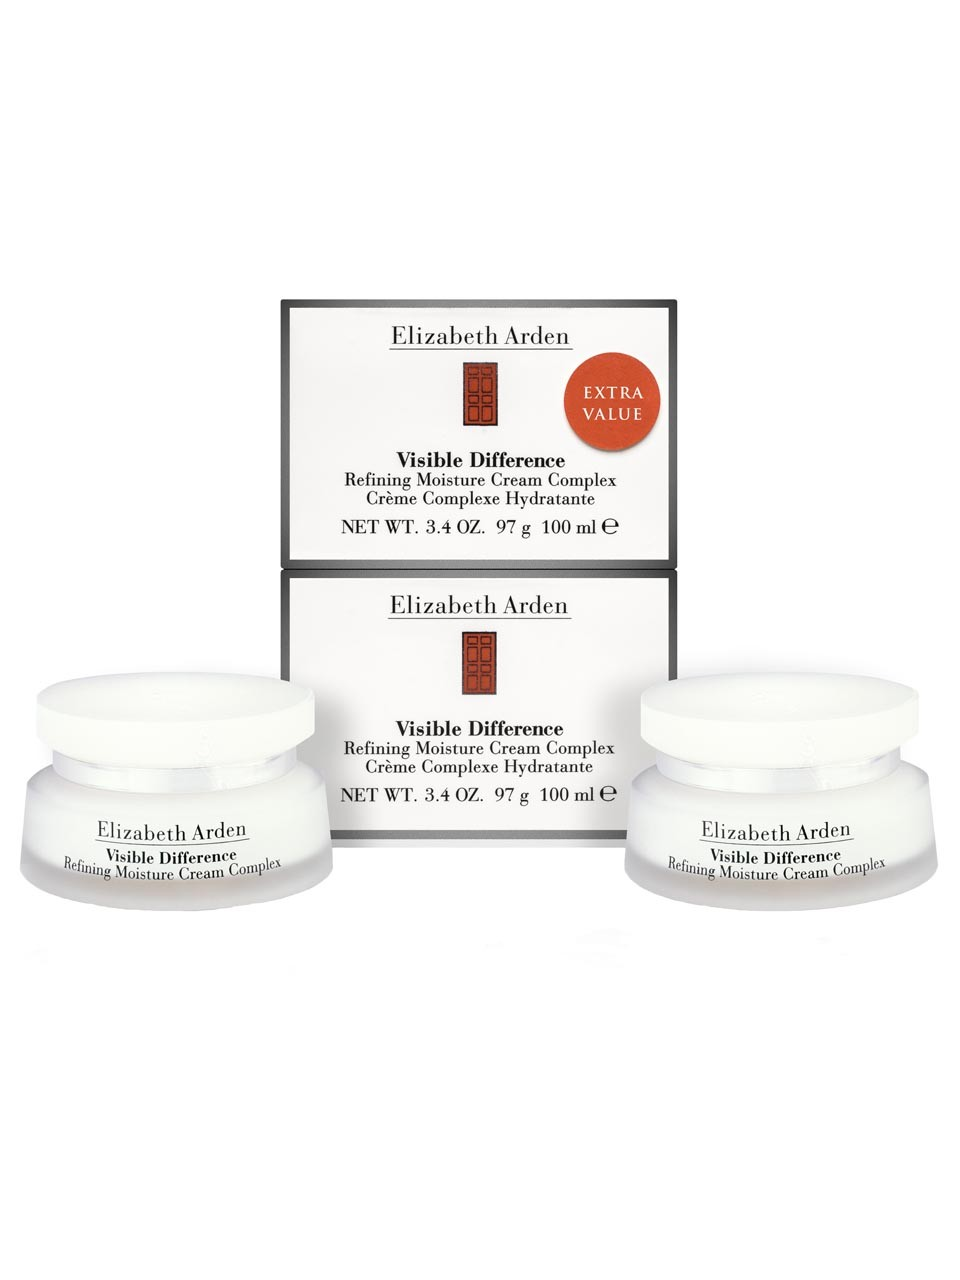 ARDEN VISIBLE DIFFERENCE MOISTURE CREAM 100 ML X 2